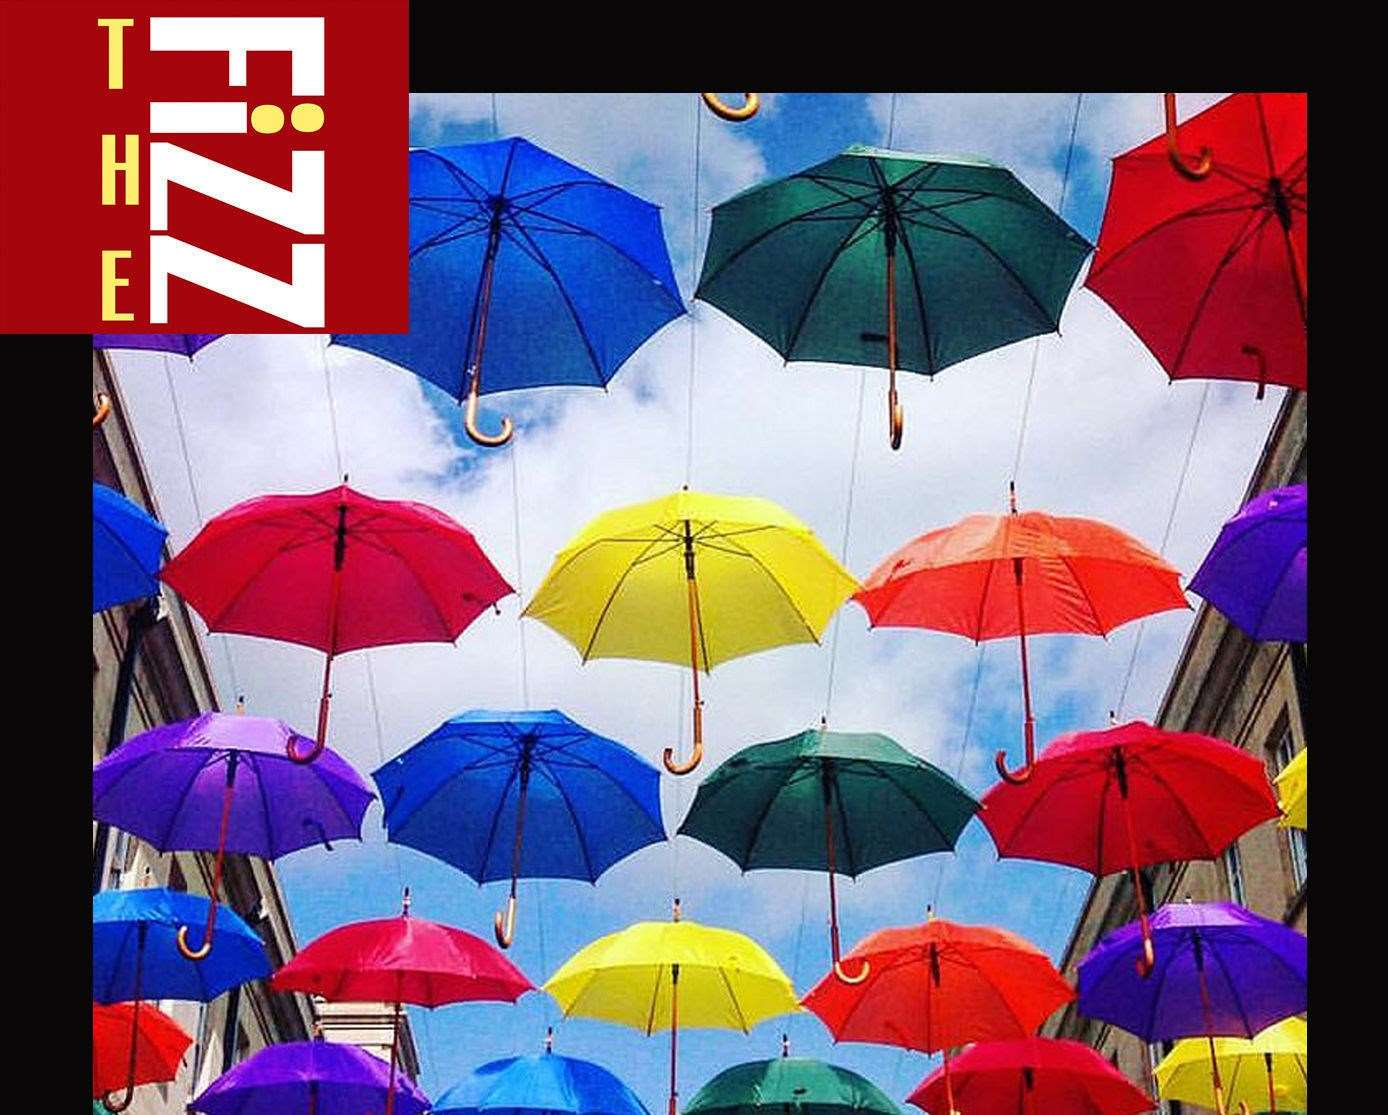 Dancing in the Rain by The Fizz single cover Picture: PA Photo/MPG Records